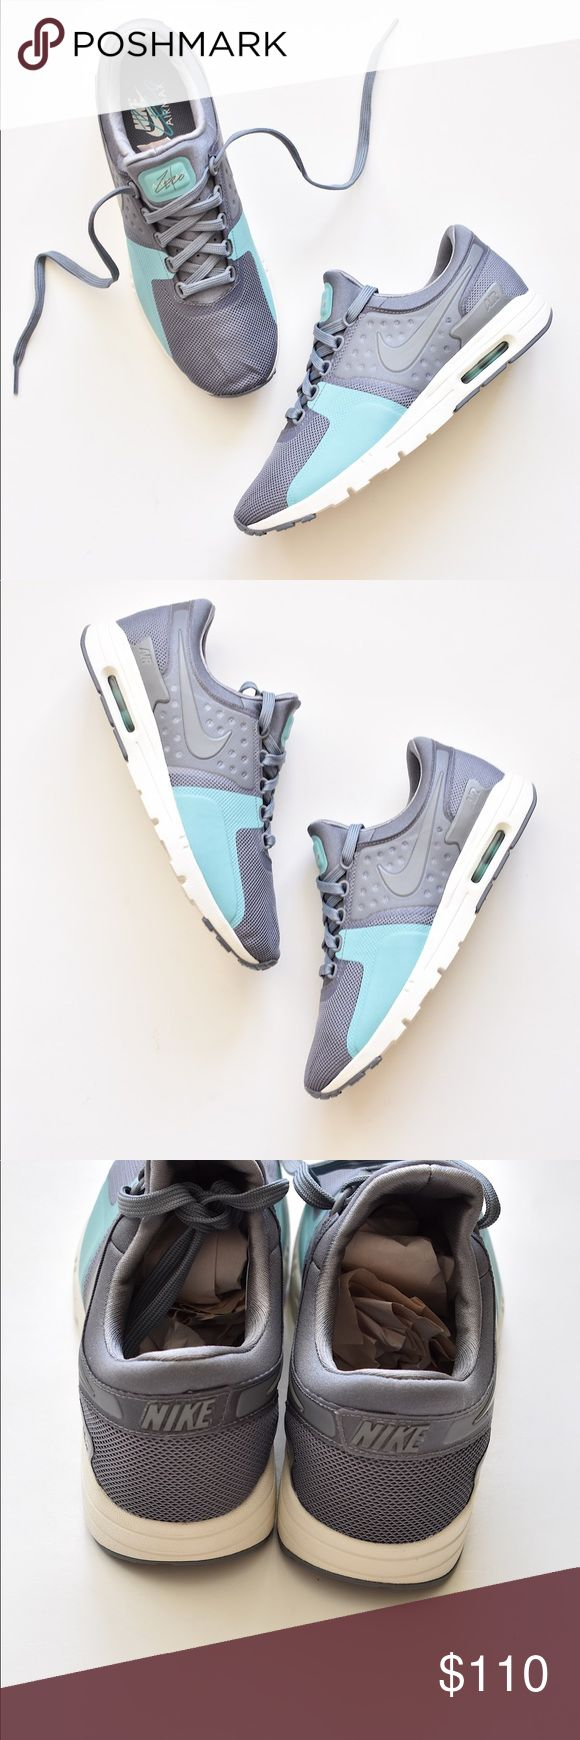 NIKE Women's Air Max Zero Cool Grey Teal Sneaker NWOB. Women's Nike Air Max Zero Shoe blends modern style with heritage roots. Last photo model wearing same style in different color.  Leather and textile upper gives a premium look. Visible Max Air unit provides lightweight cushioning. Bootie construction for a snug, supportive fit. Injected unit sole offers lightweight cushioning. Rubber outsole delivers excellent traction. Nike Shoes Athletic Shoes